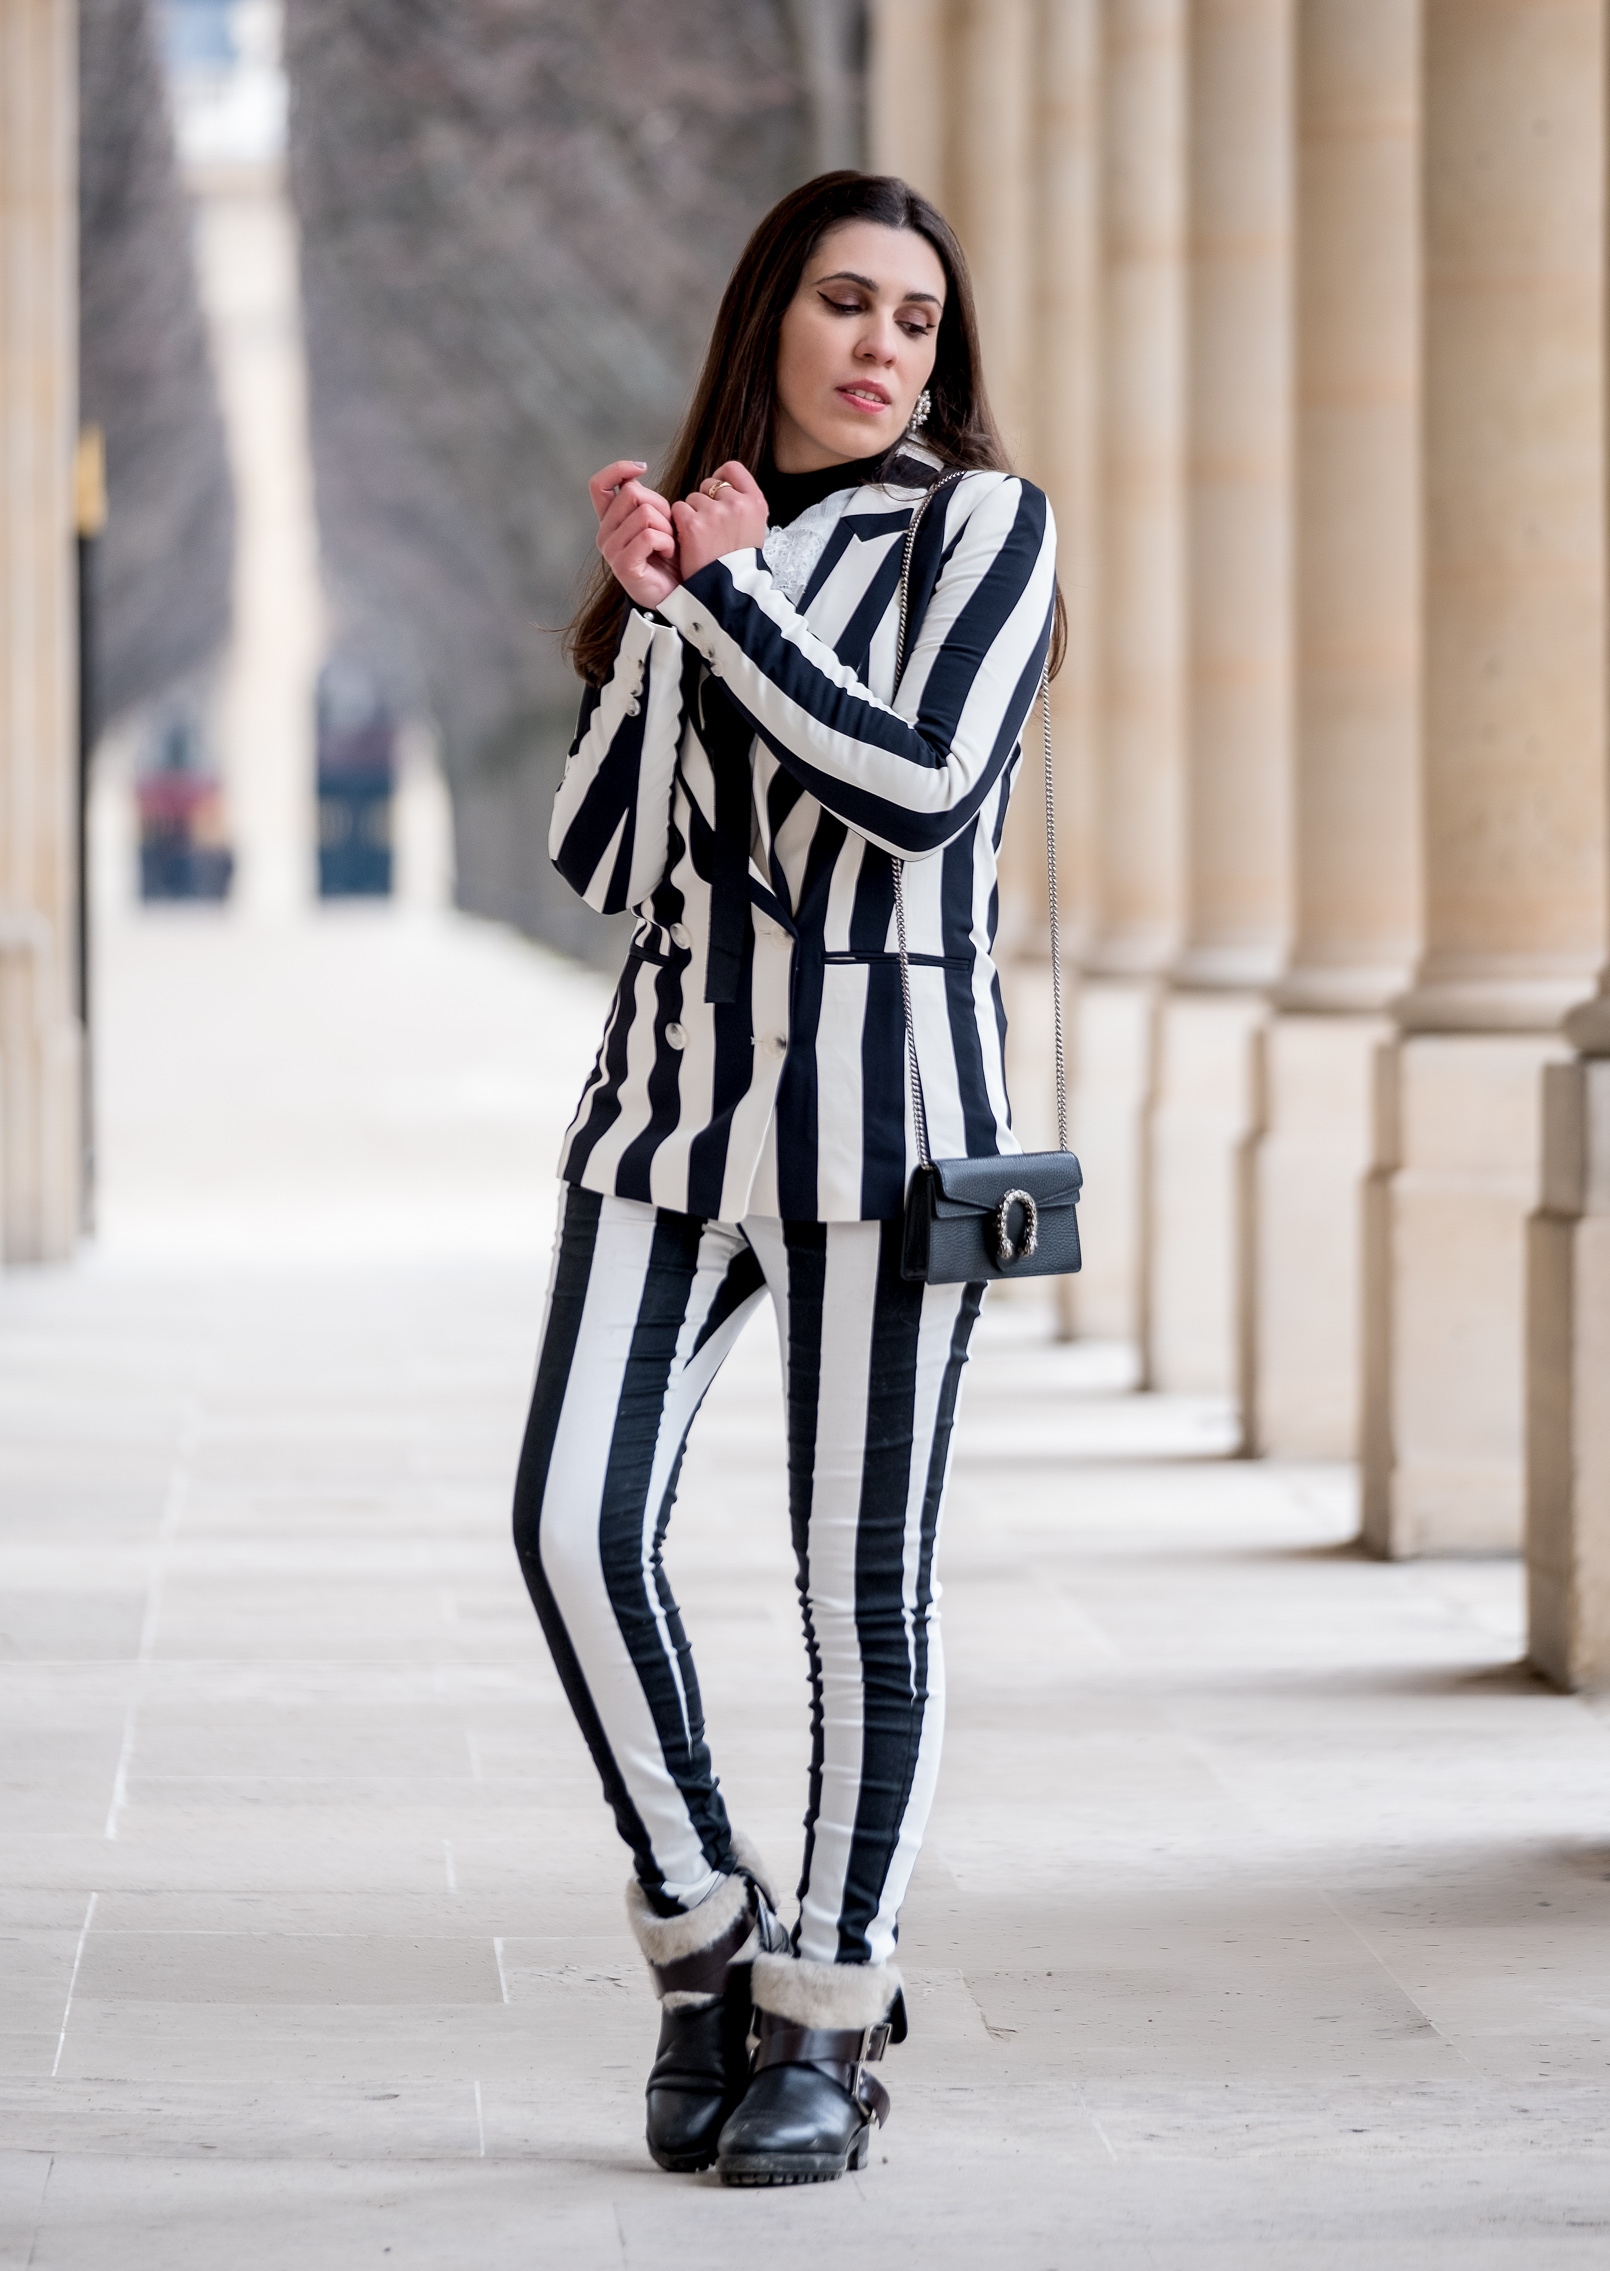 Le Fashionaire stripes black white hm blazer black white vertical stripes hm trousers gucci mini dionysus black silver tiger bag black zara boots 2368 EN stripes black white hm blazer black white vertical stripes hm trousers gucci mini dionysus black silver tiger bag black zara boots 2368 EN